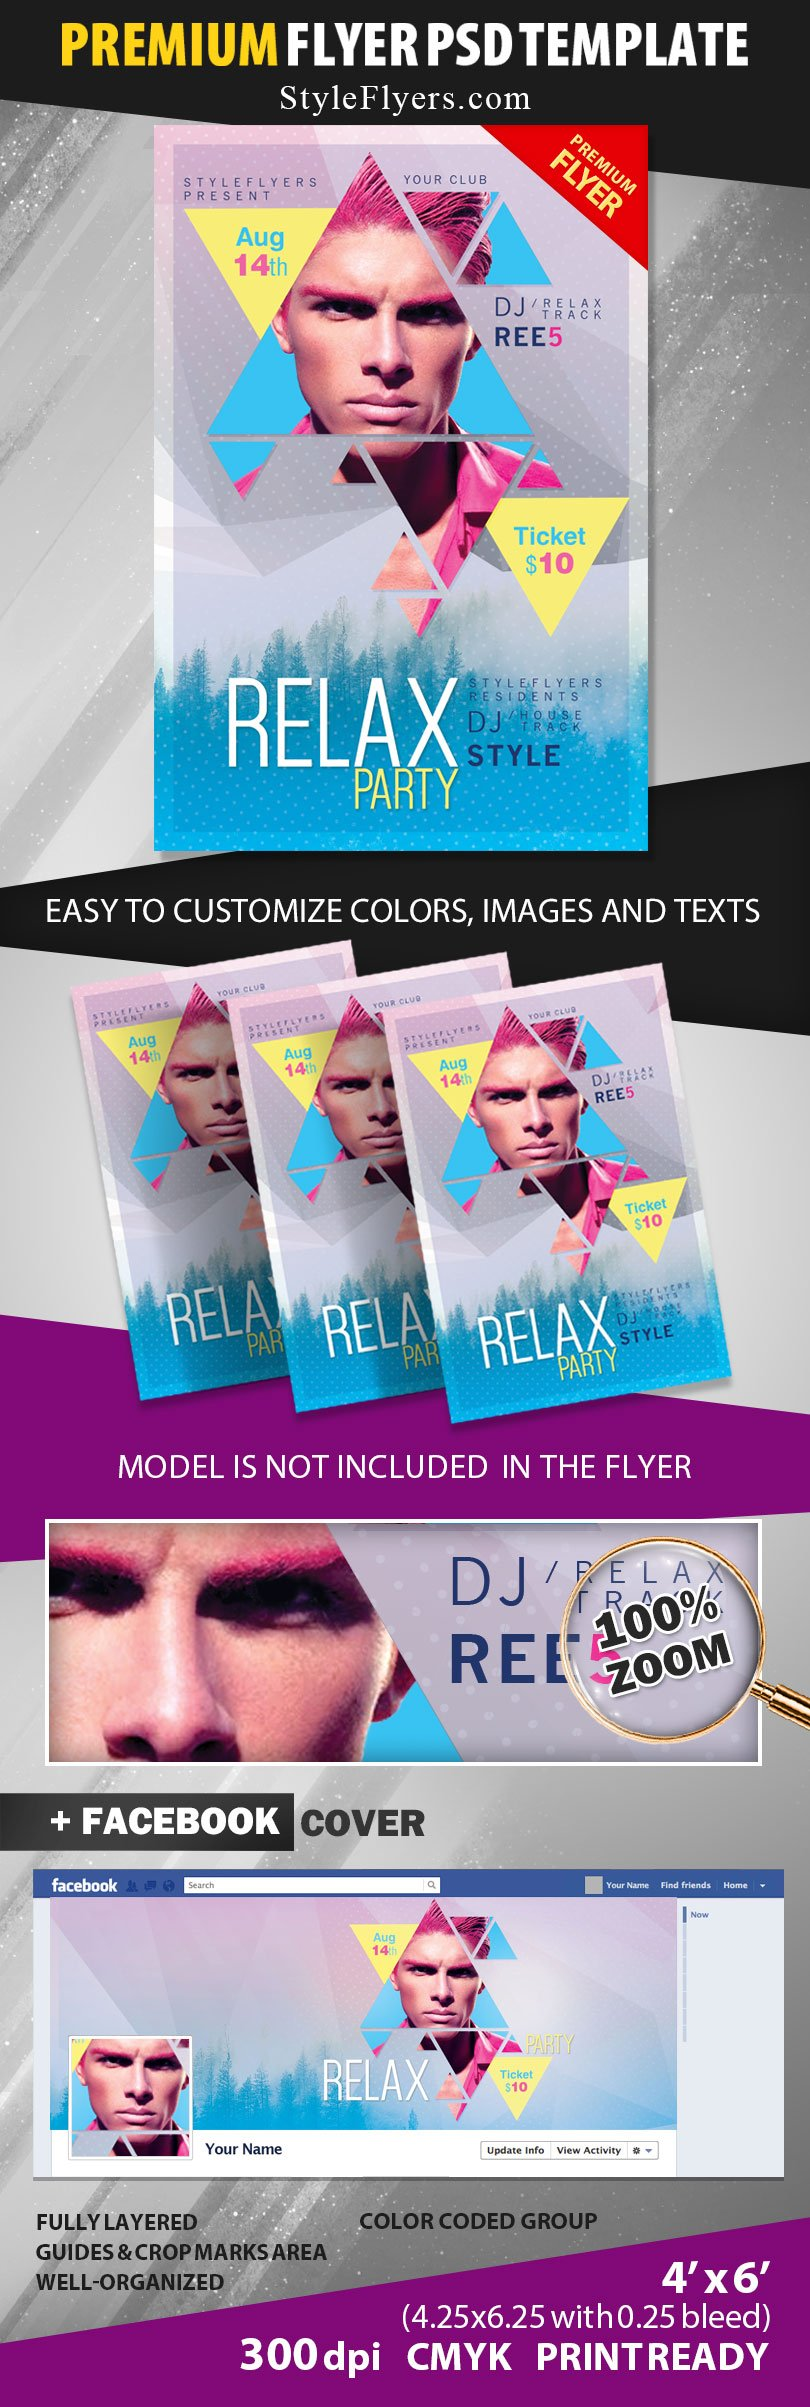 Relax Party PSD Flyer Template